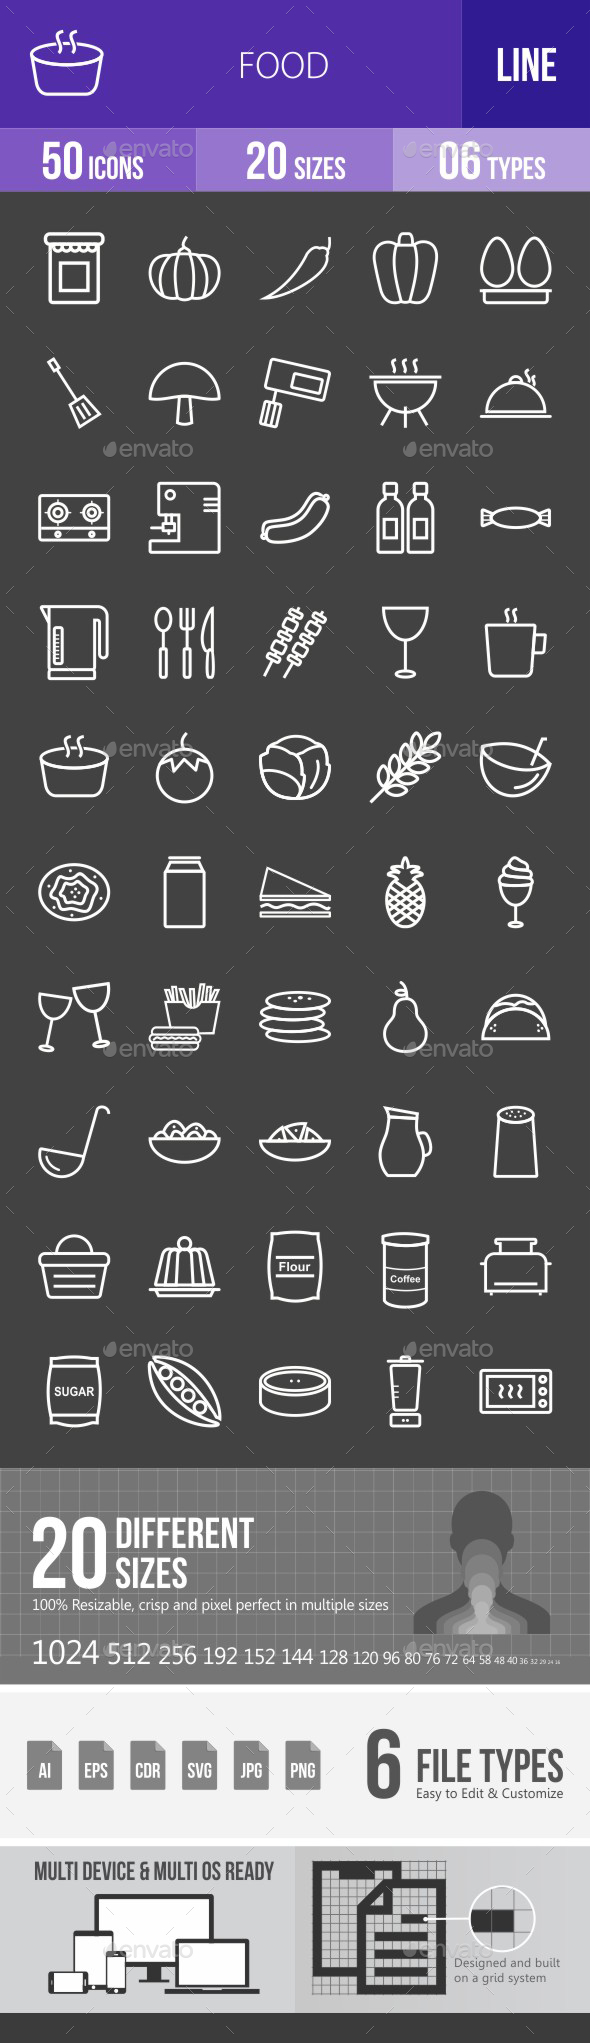 Food Line Inverted Icons - Icons